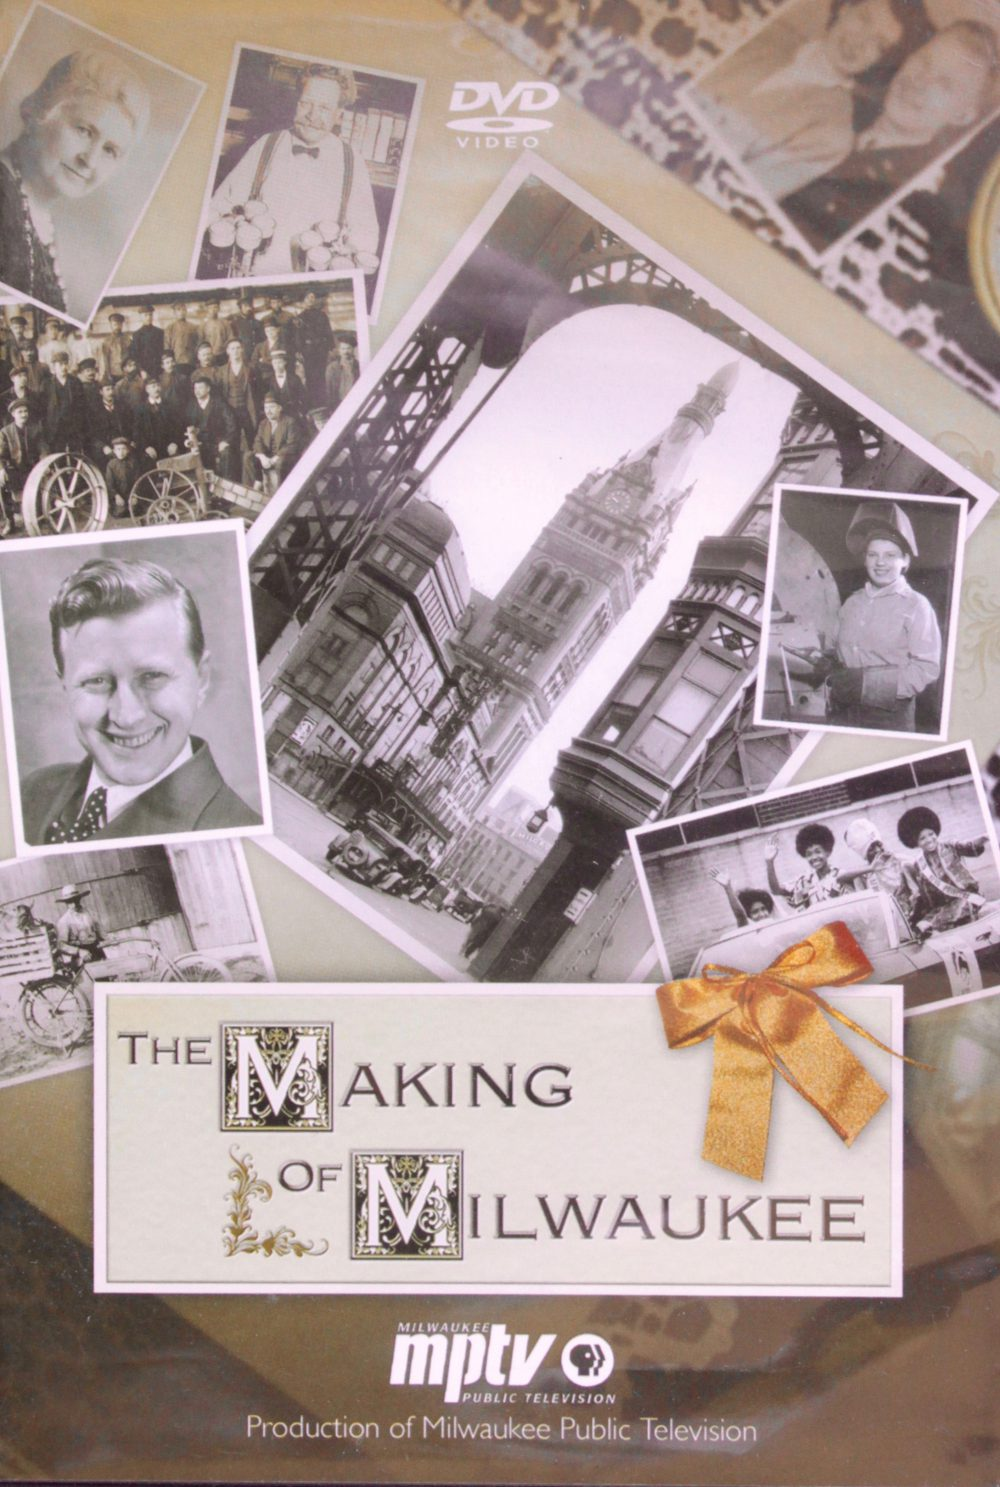 The Making of Milwaukee. From Milwaukee Public Television